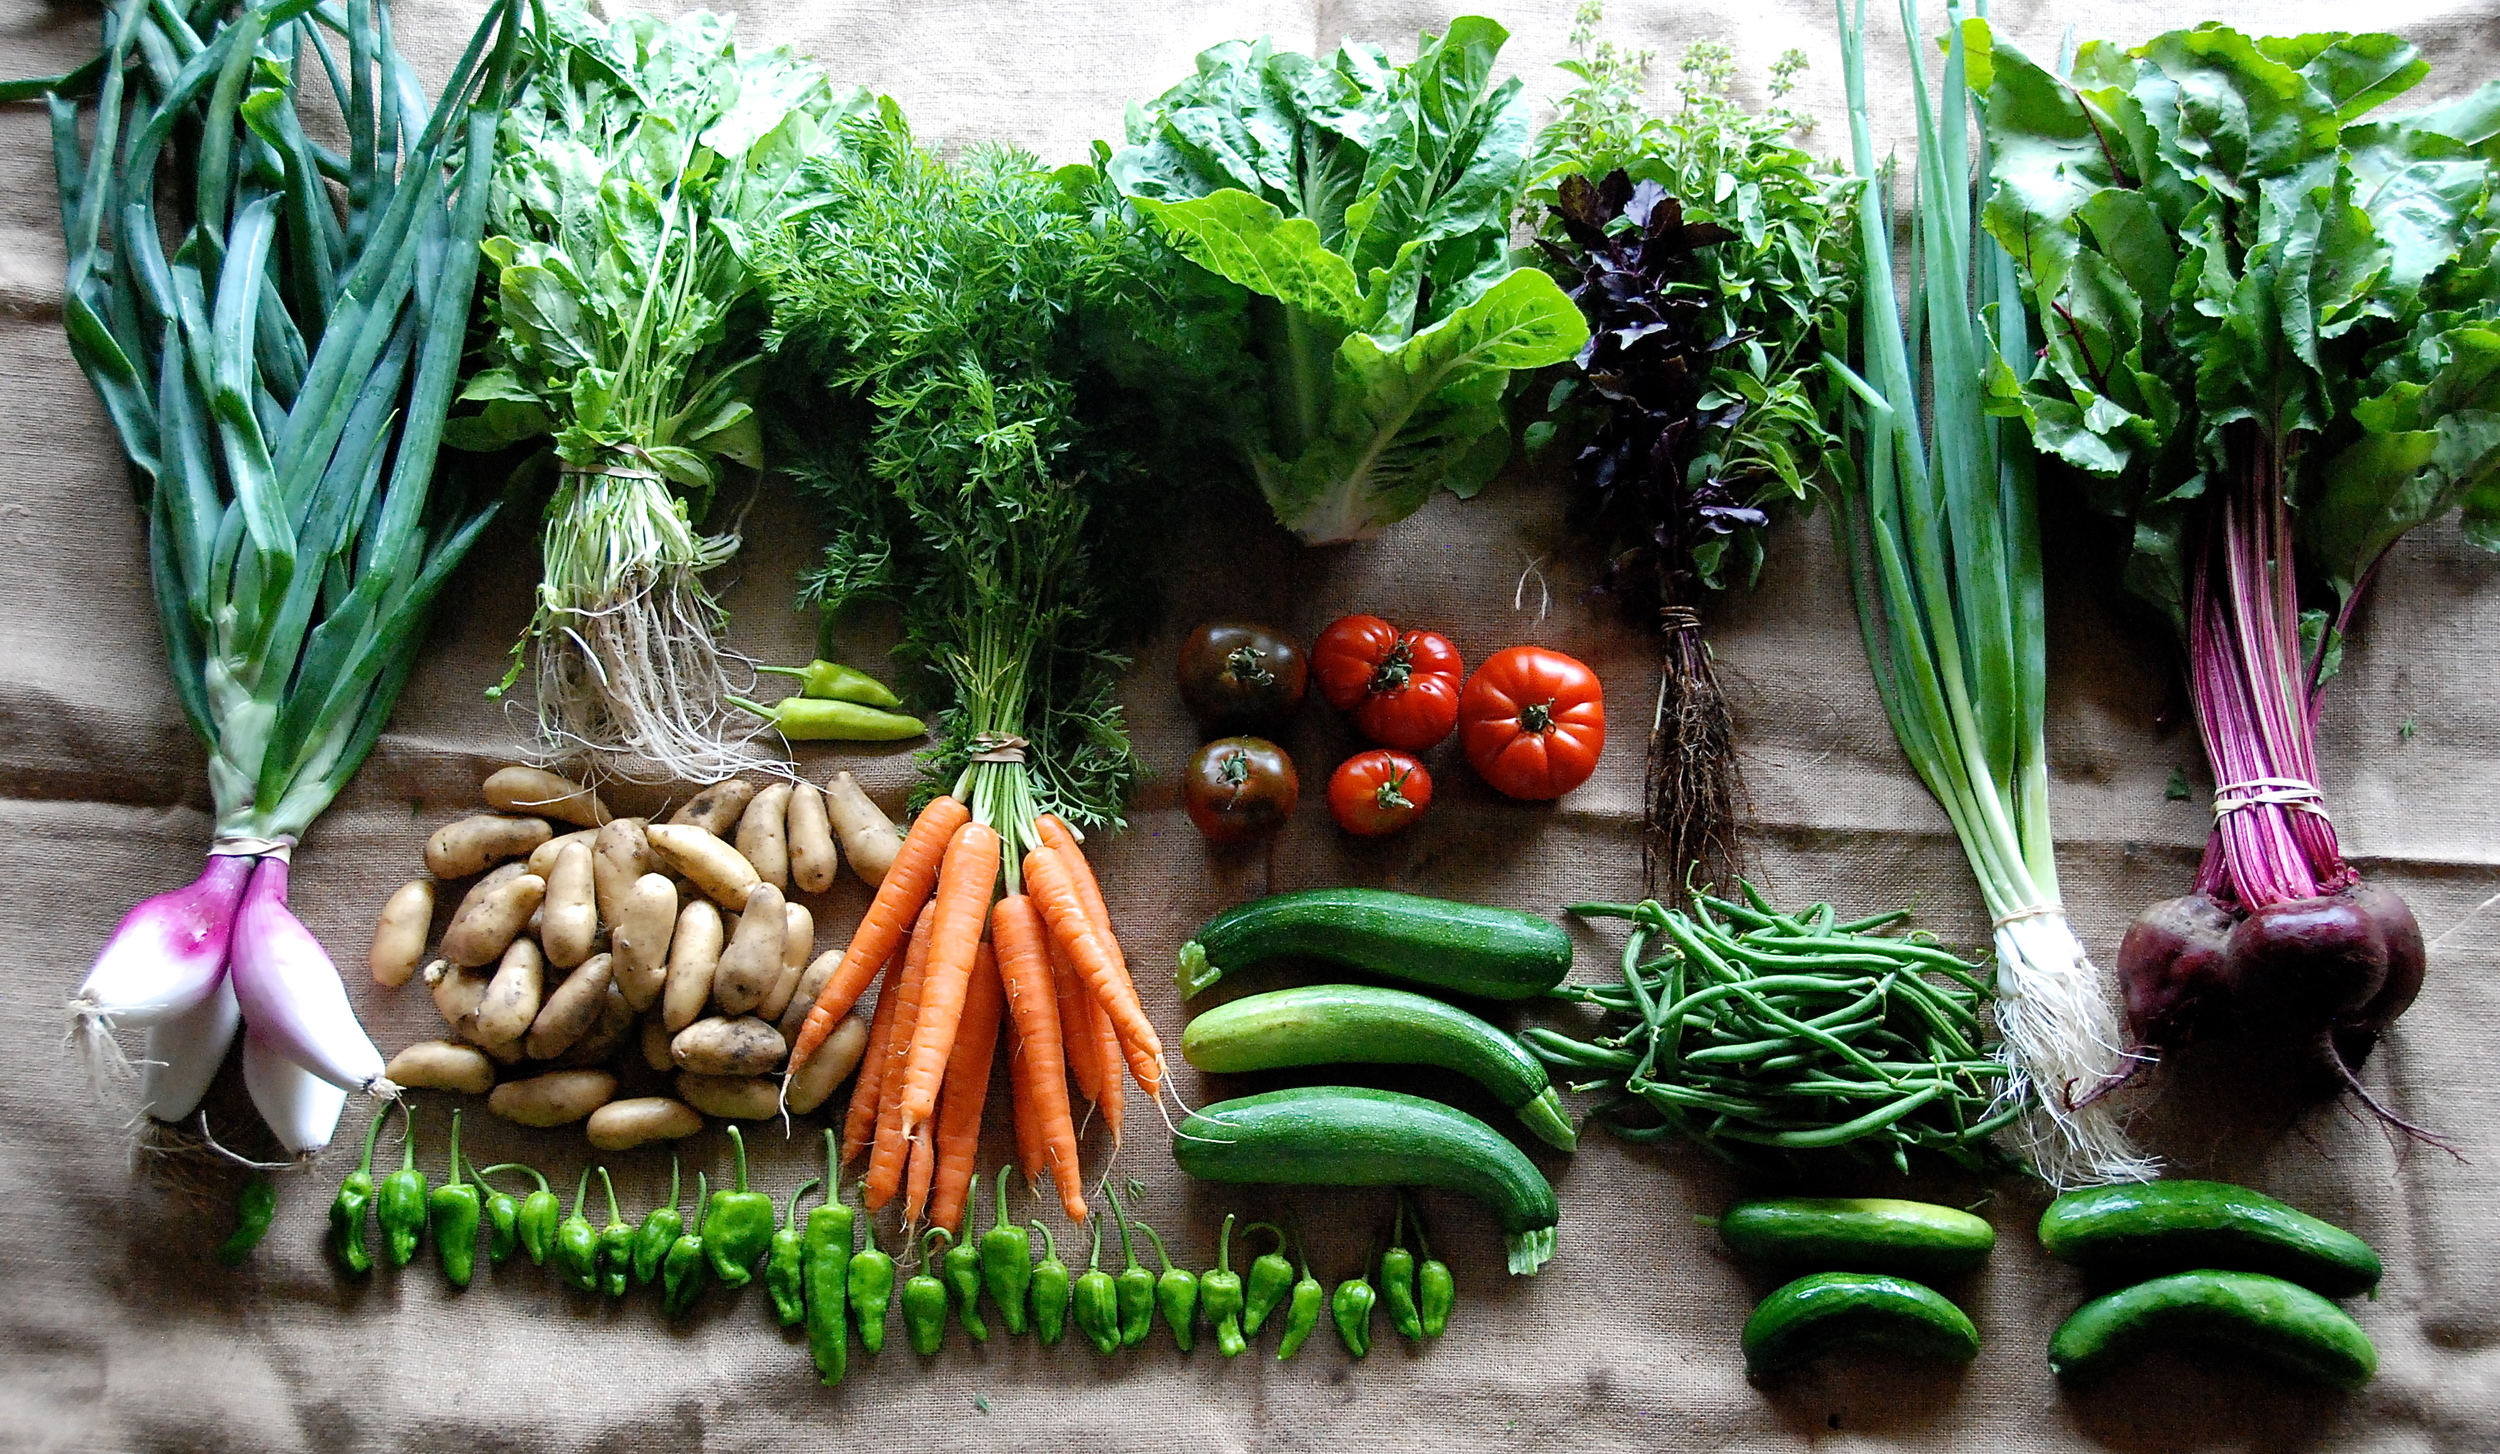 CSA Summer share box week #2